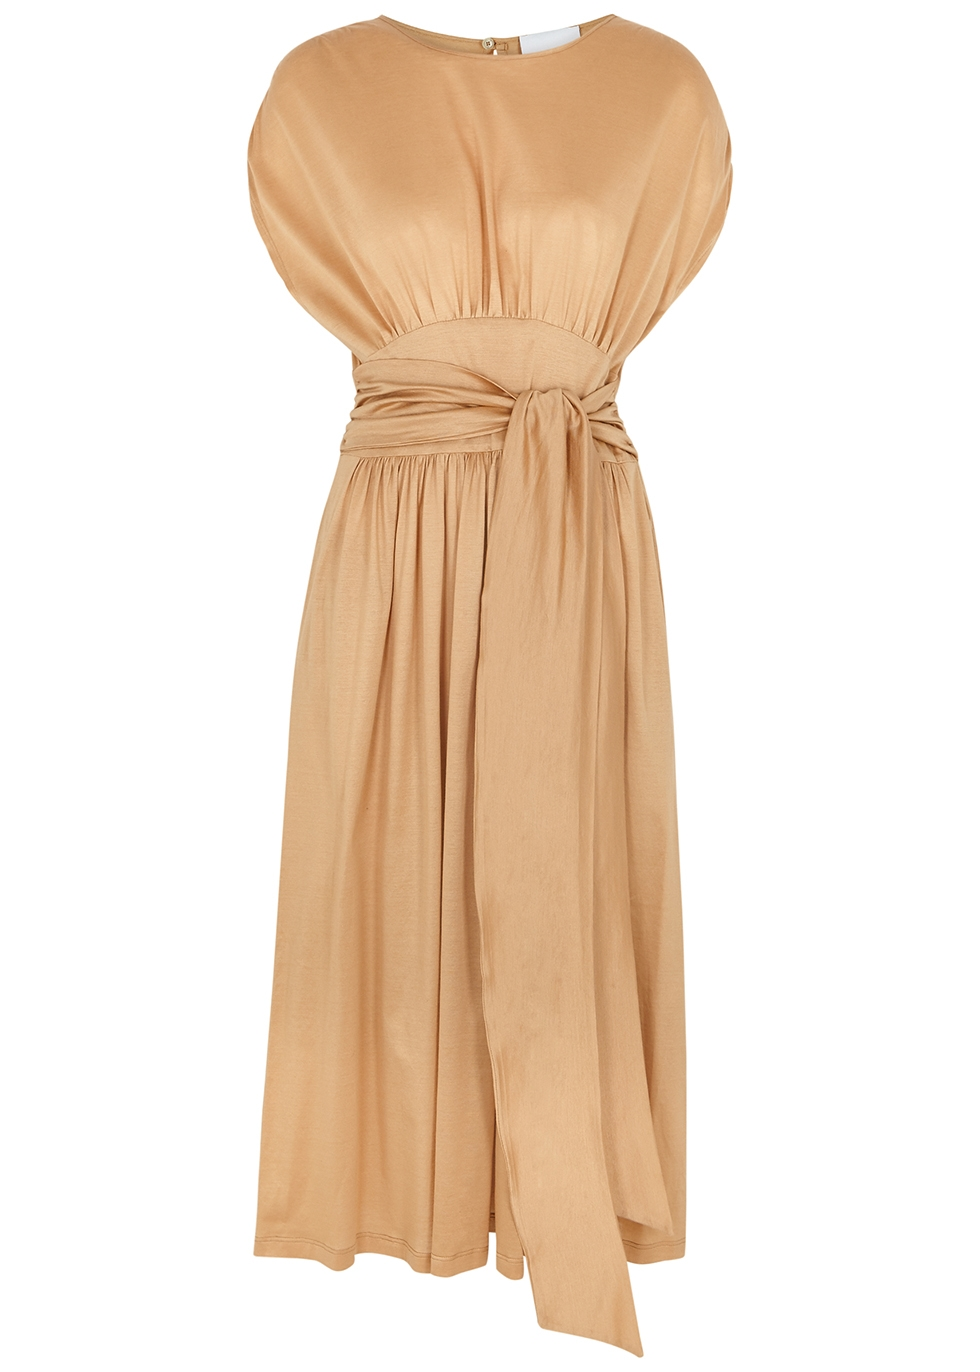 Luana sand cotton midi dress